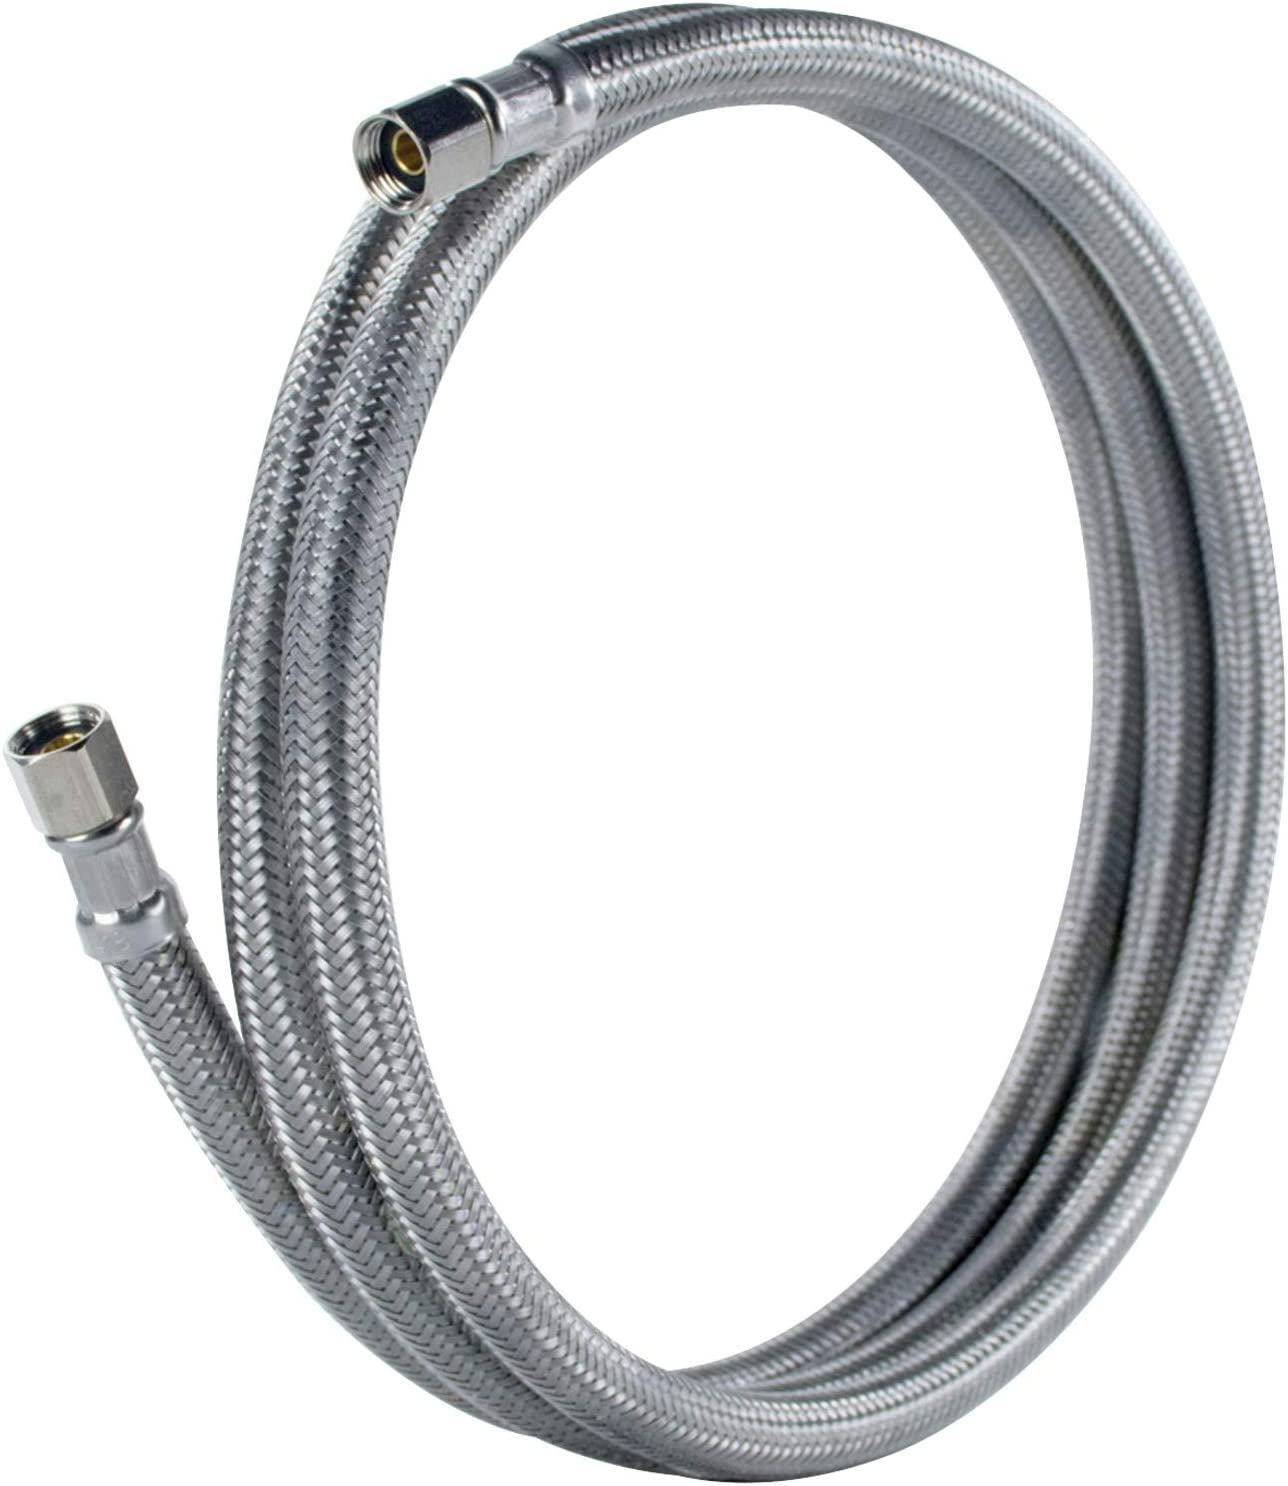 PVC Core with Premium Braided Stainless Steel 4 Feet Certified Appliance Accessories Ice Maker Water Line